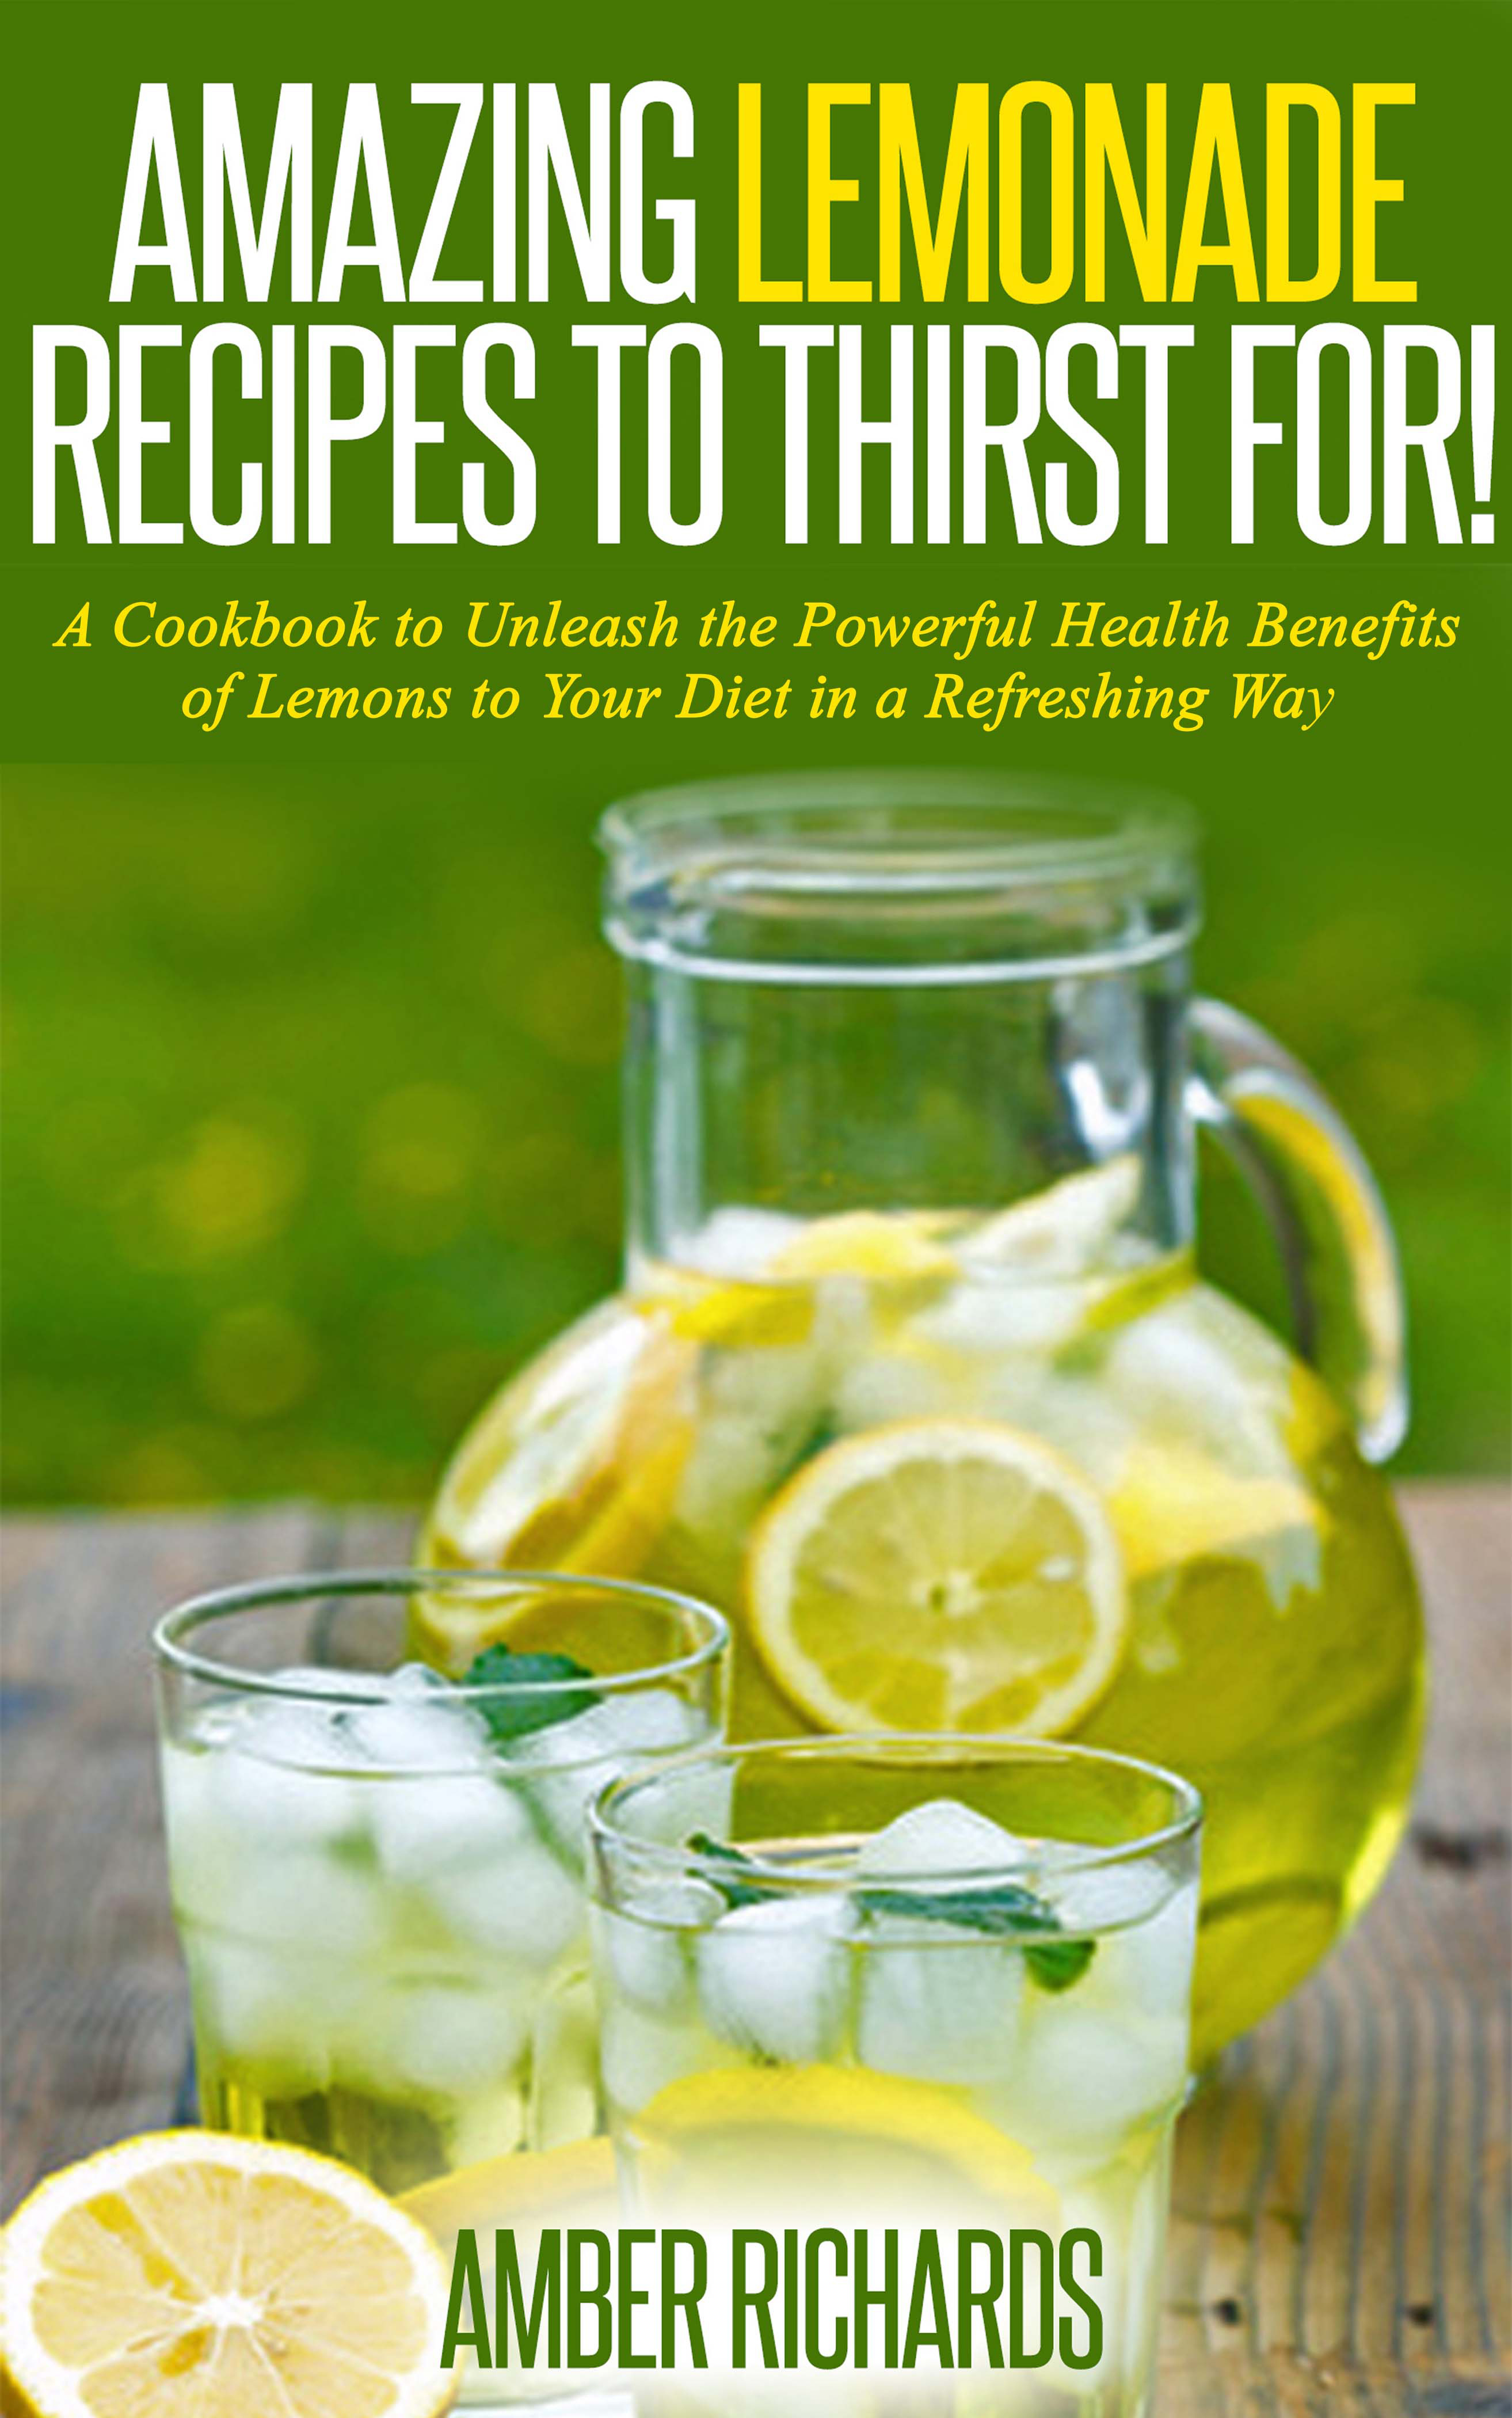 Amazing lemonade recipes to thirst for